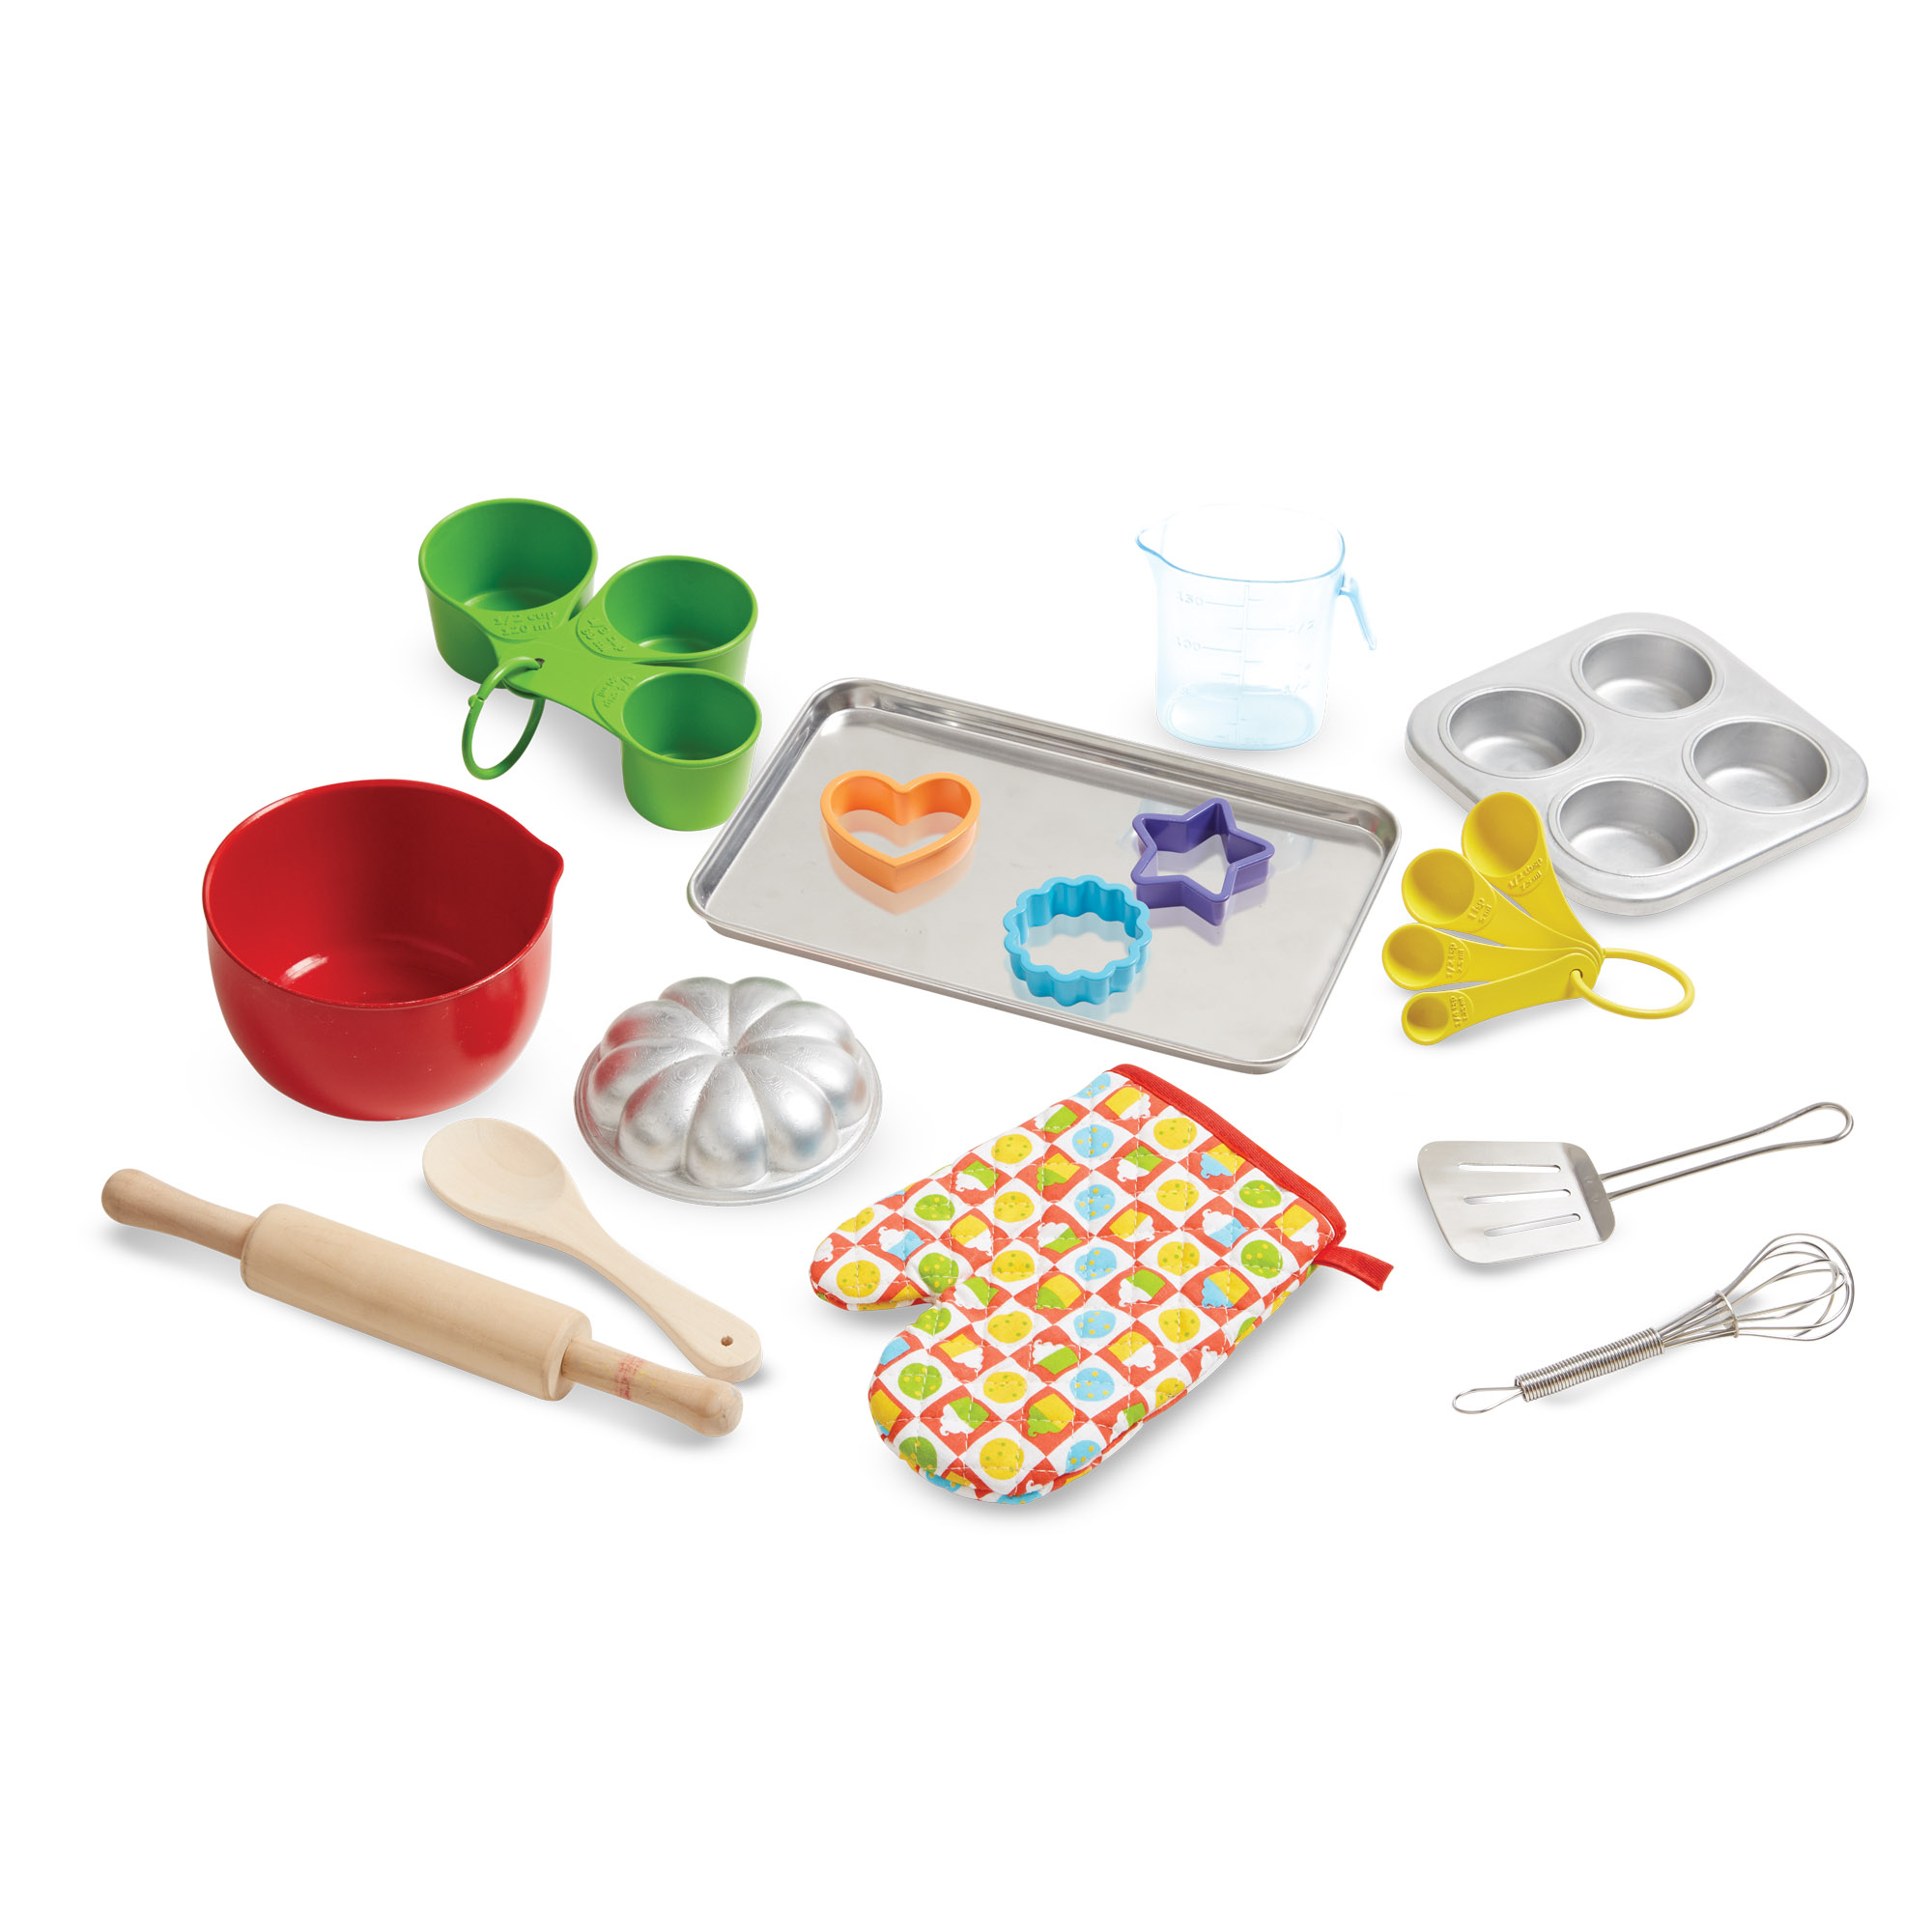 Let's Play House! Baking Play Set 9356